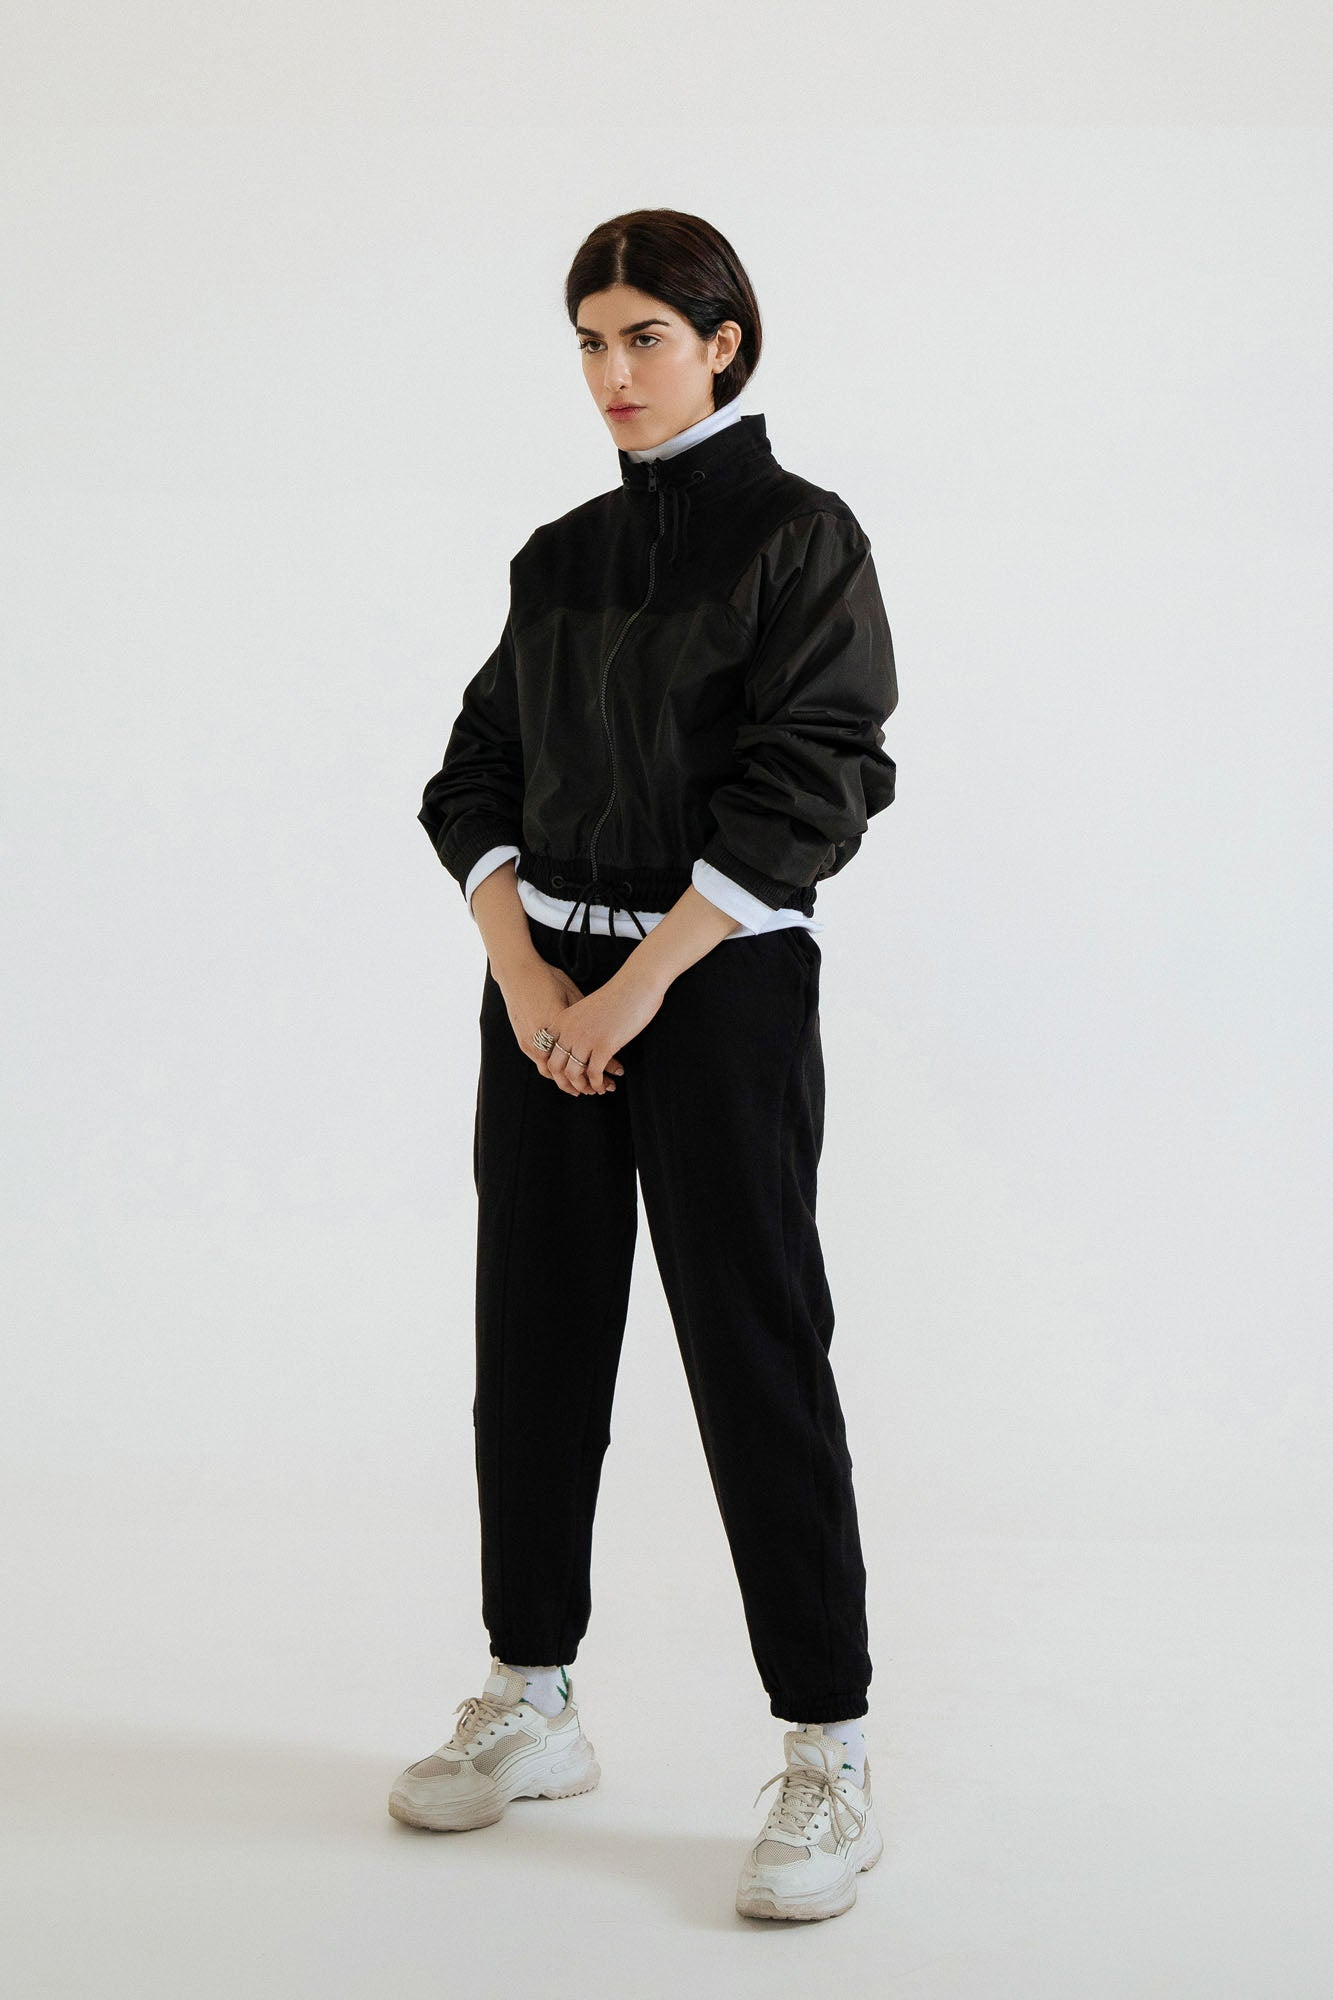 KNIT TERRY TECHNICAL TRACK SUIT (WTW401763)